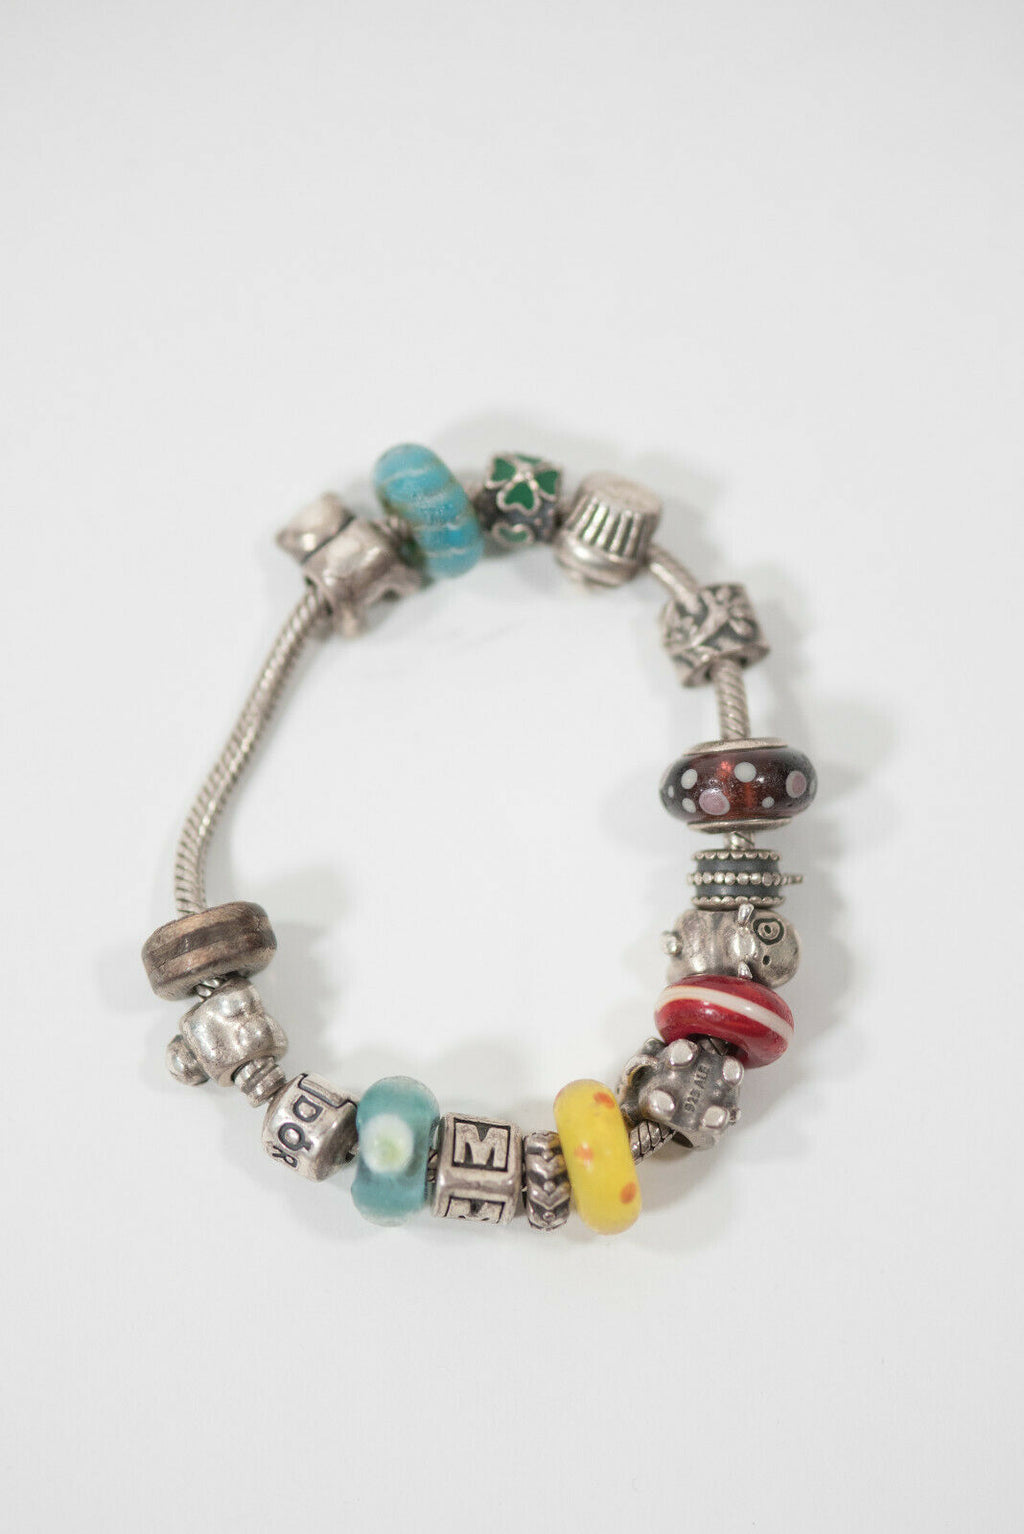 Pandora Womens Silver Charm Bracelet 16 Charms 925 Sterling Silver Glass Beads